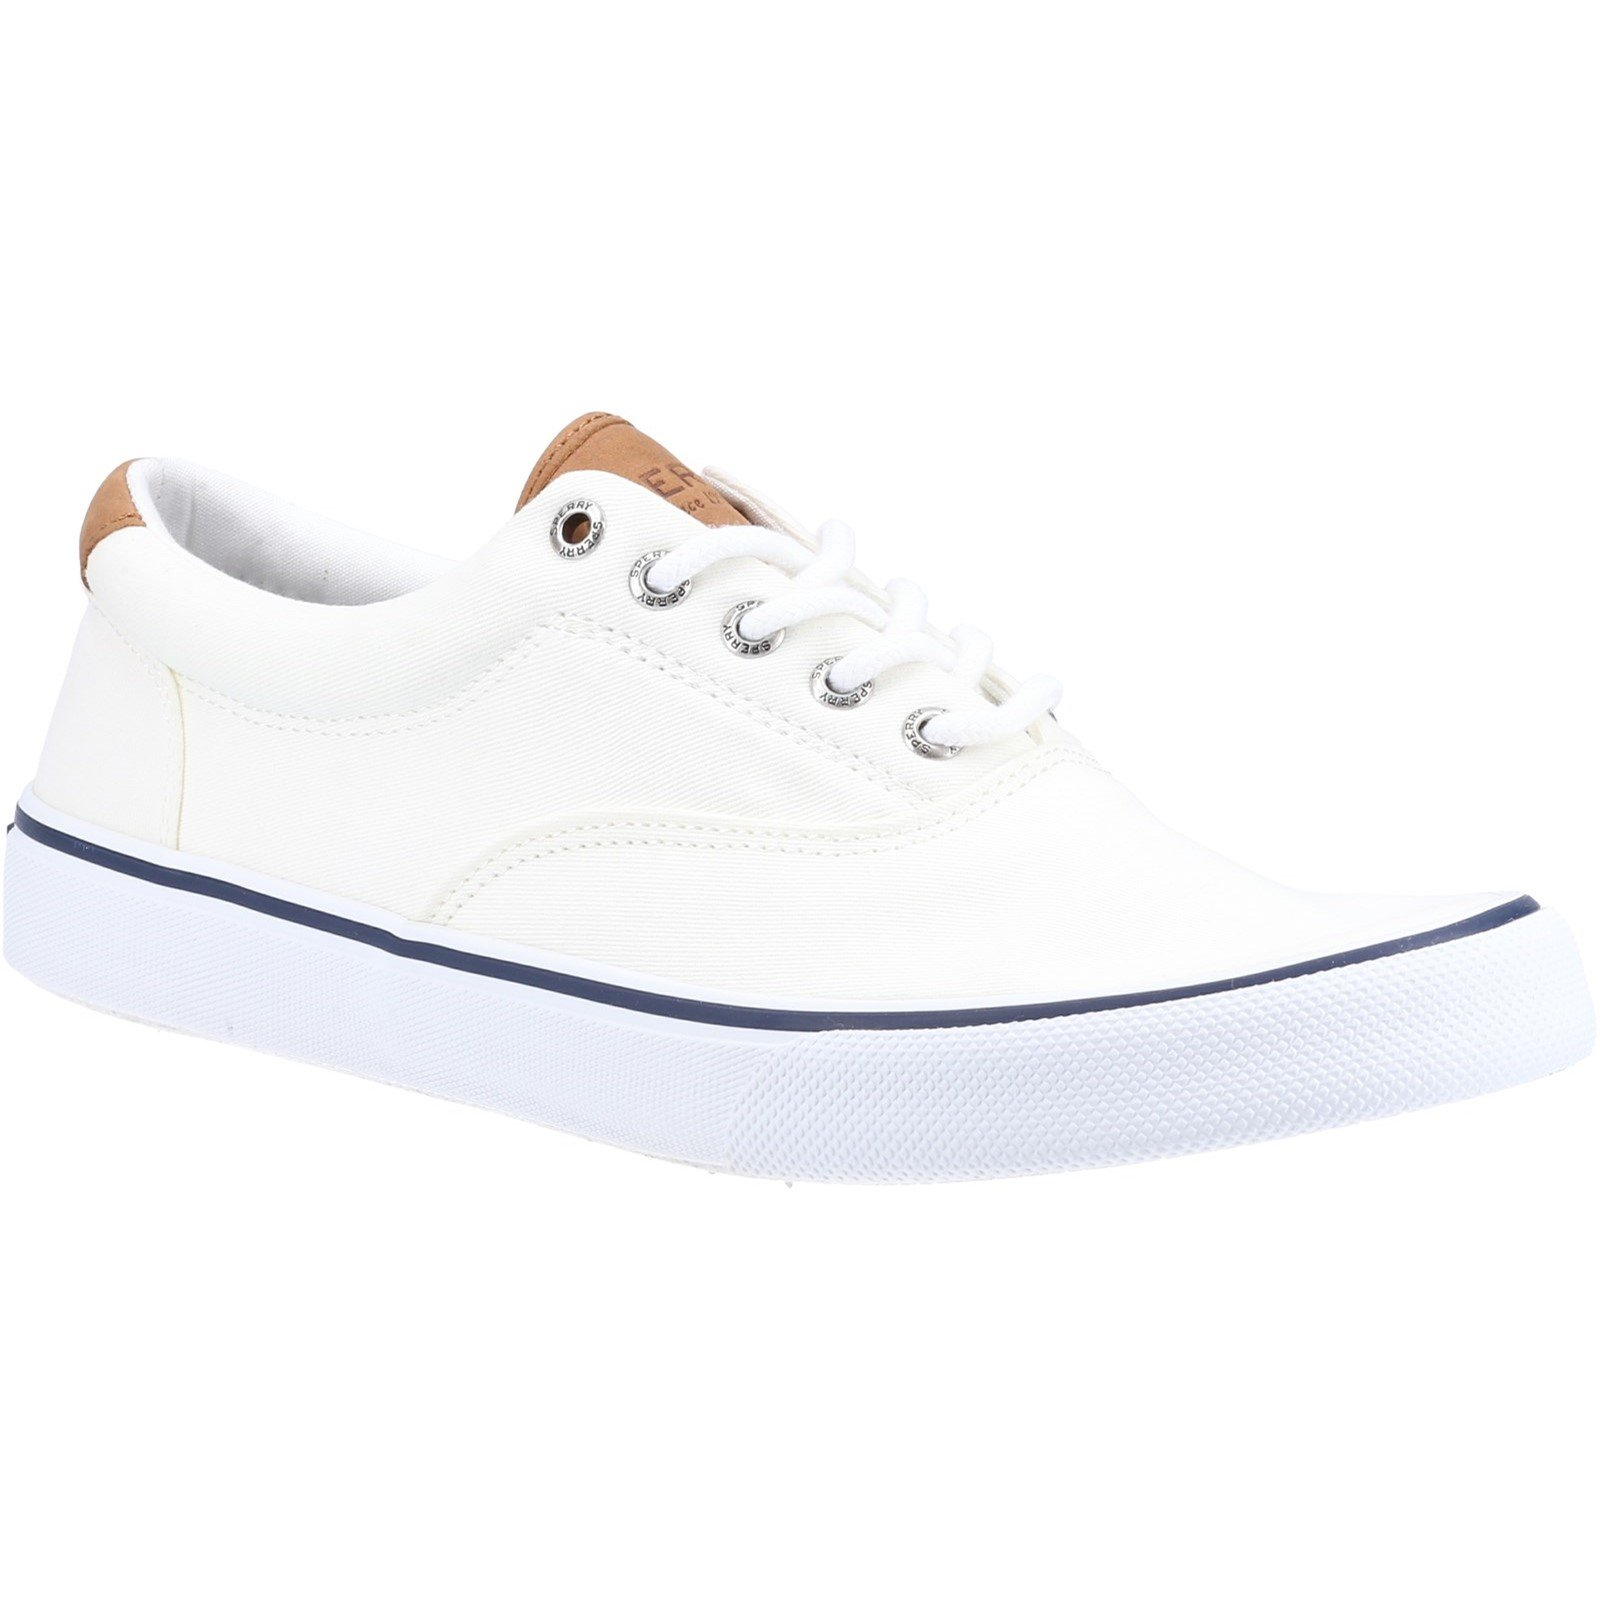 Sperry Men's Striper II CVO Canvas Trainers Various Colours 32397 - Salt Washed White 6